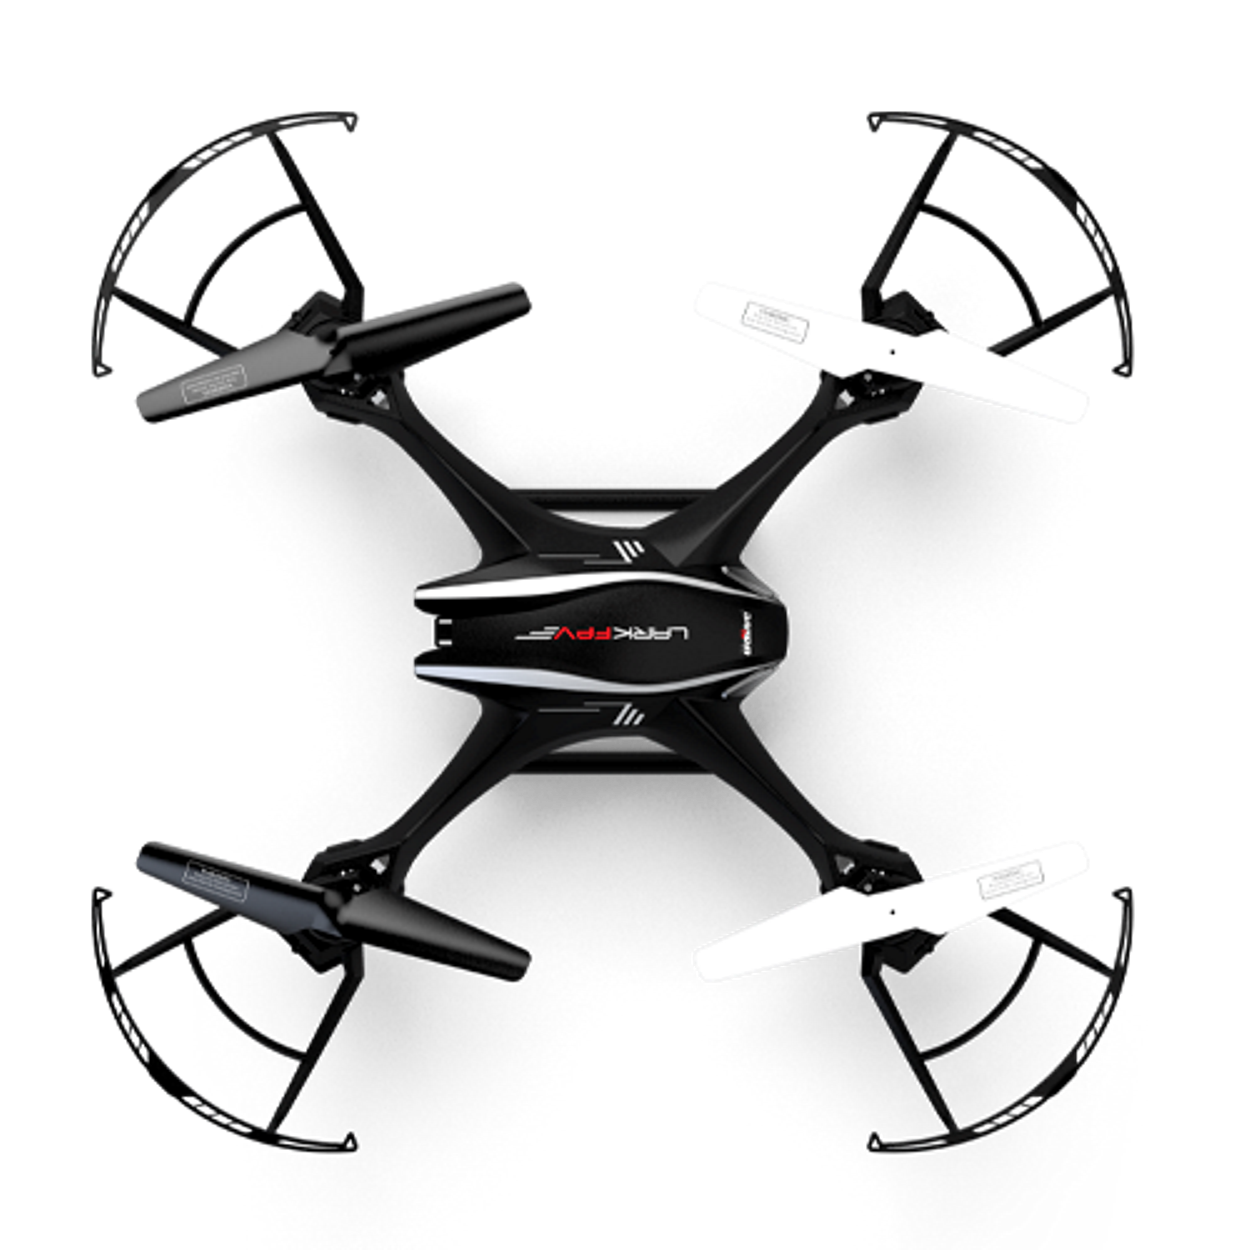 parrot ar drone 2 0 release date with Review on Dji Phantom 2 Drone Cheaper Alternative moreover P Doom 4 likewise Review besides CGFycm90IGFy in addition CGFycm90IGFy.